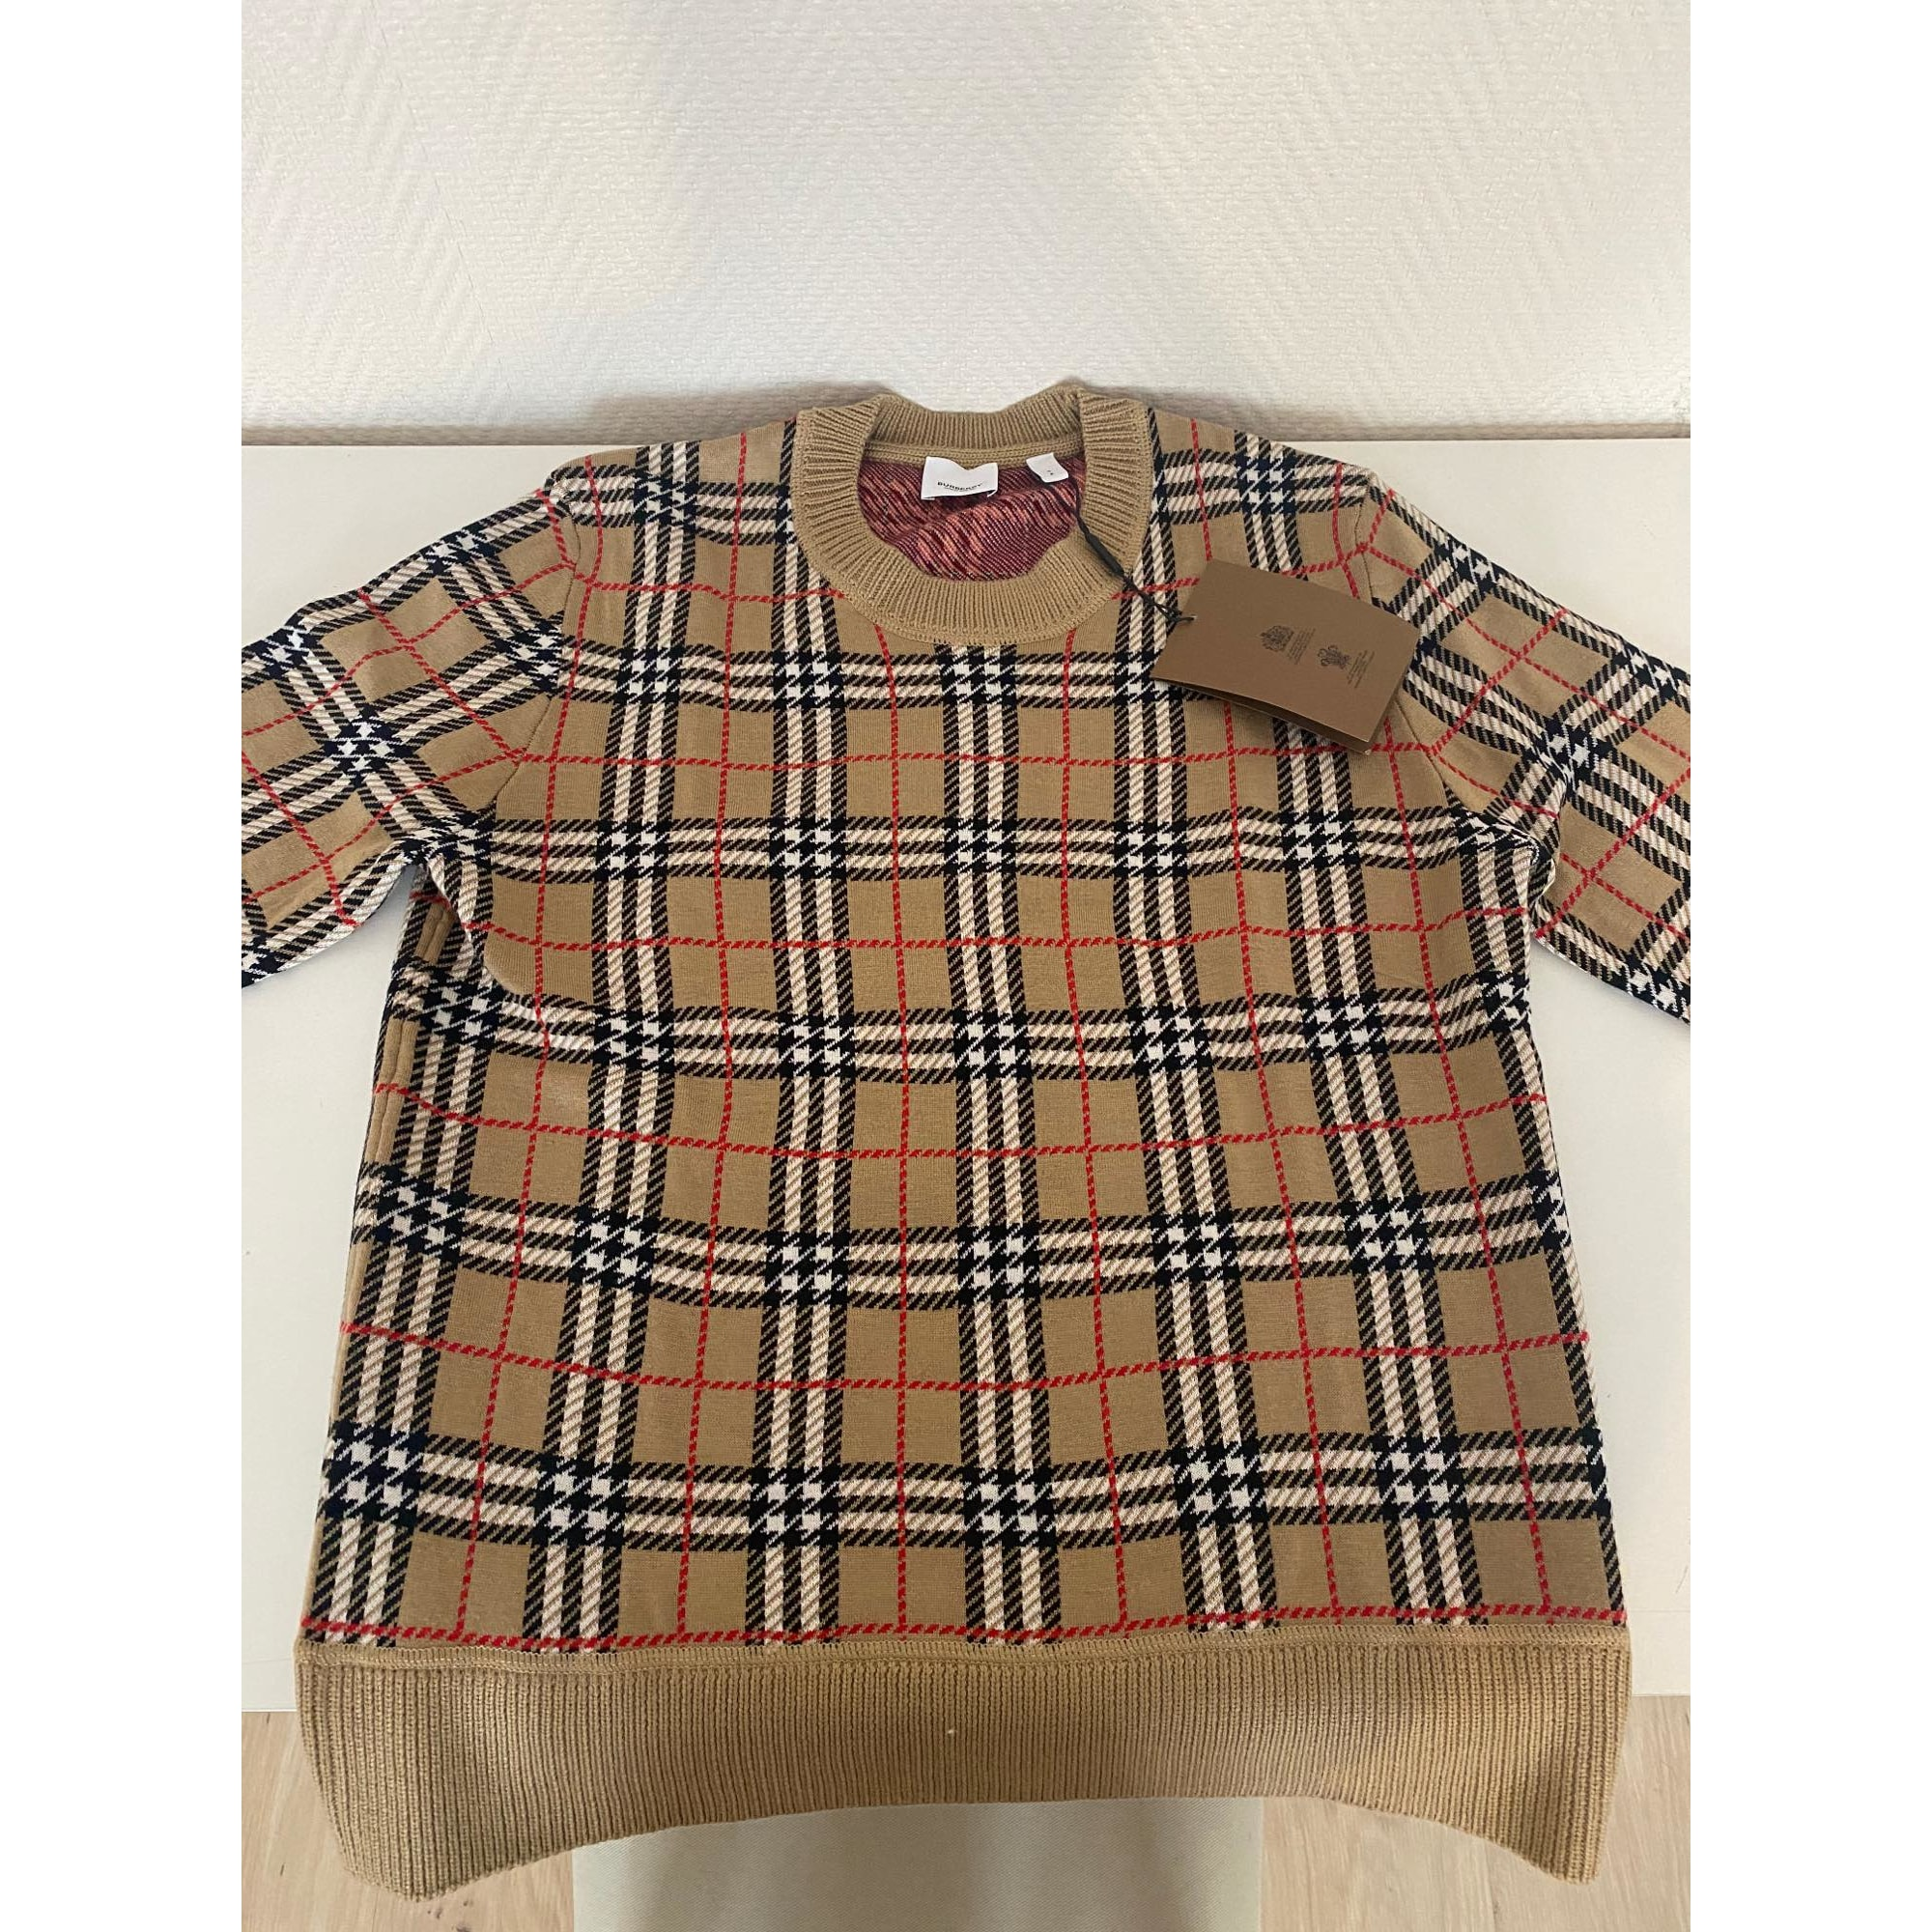 Sweat BURBERRY Beige, camel